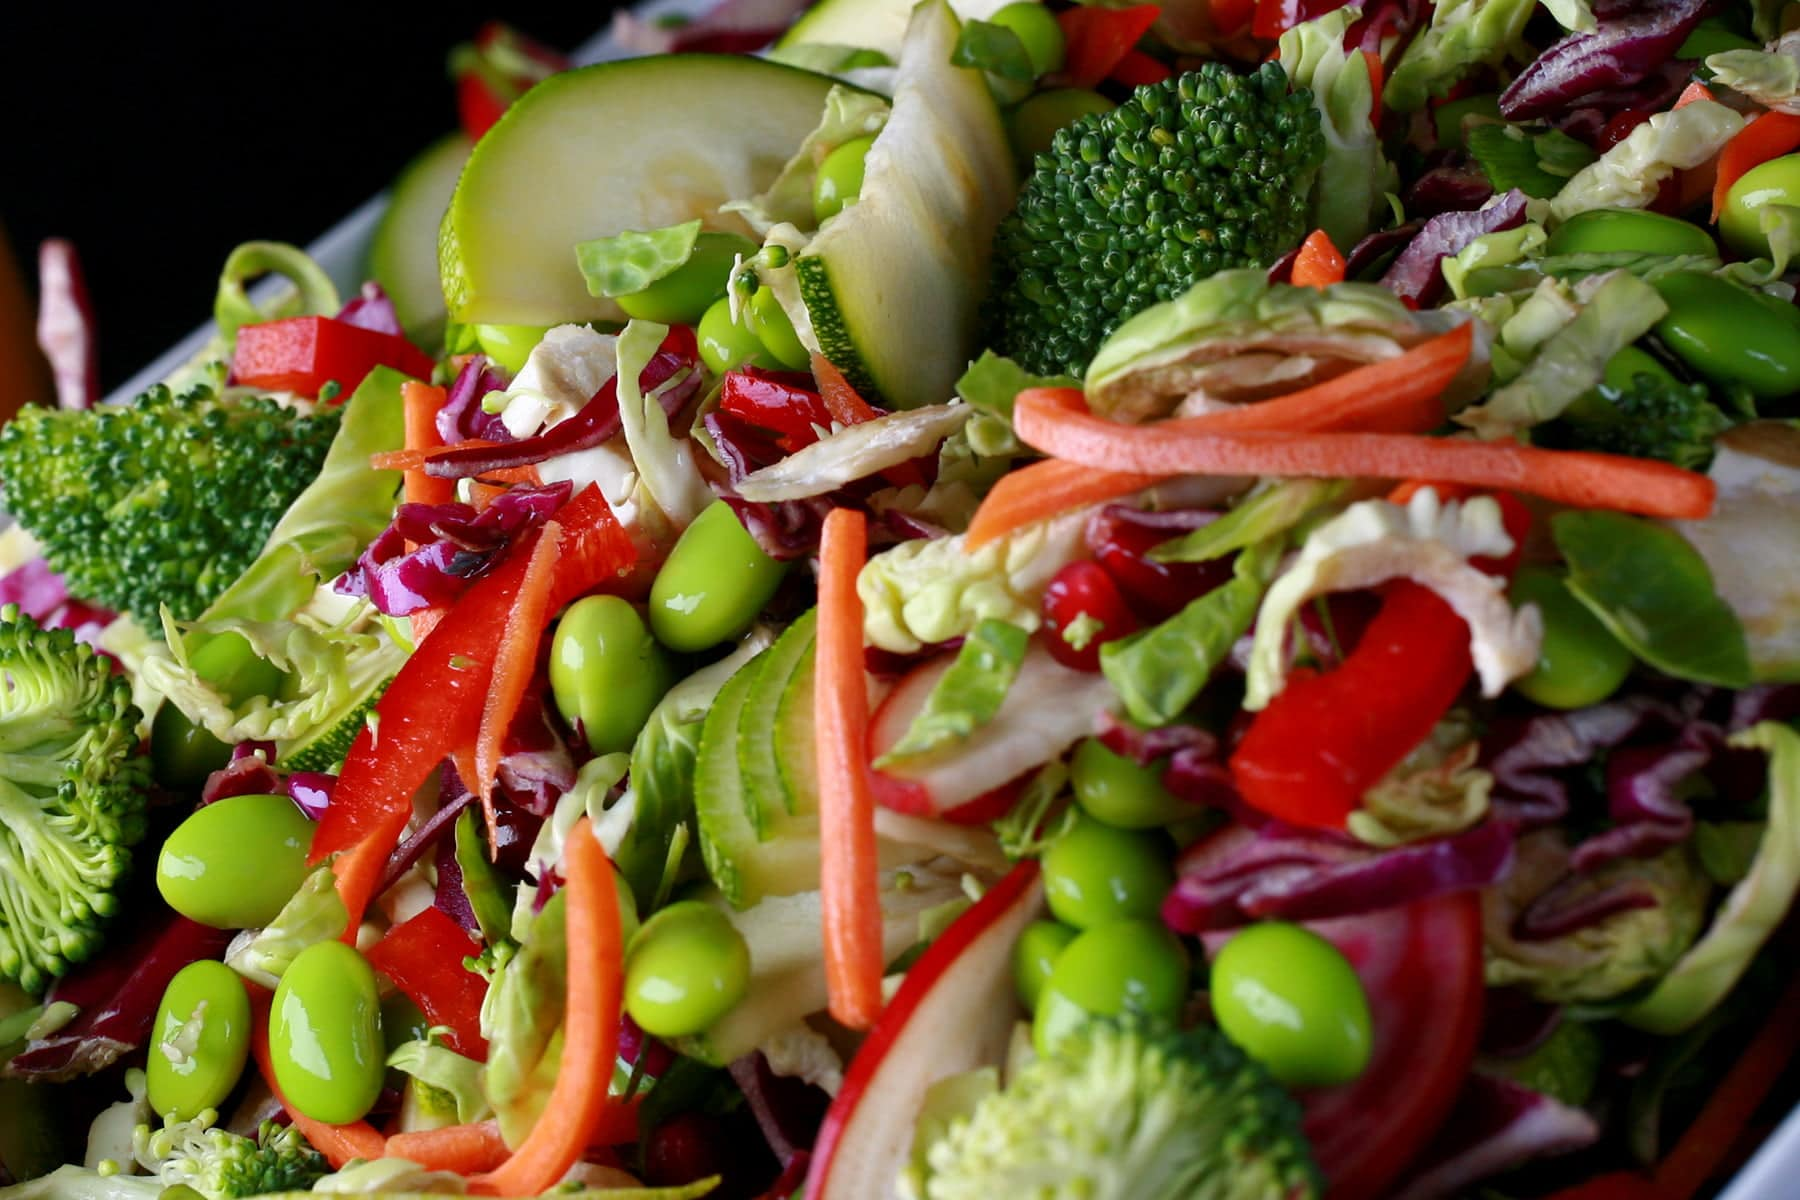 A close up view of rainbow salad. Cucumber slices, edamame, red peppers, carrot, purple cabbage, and red onions are all visible.